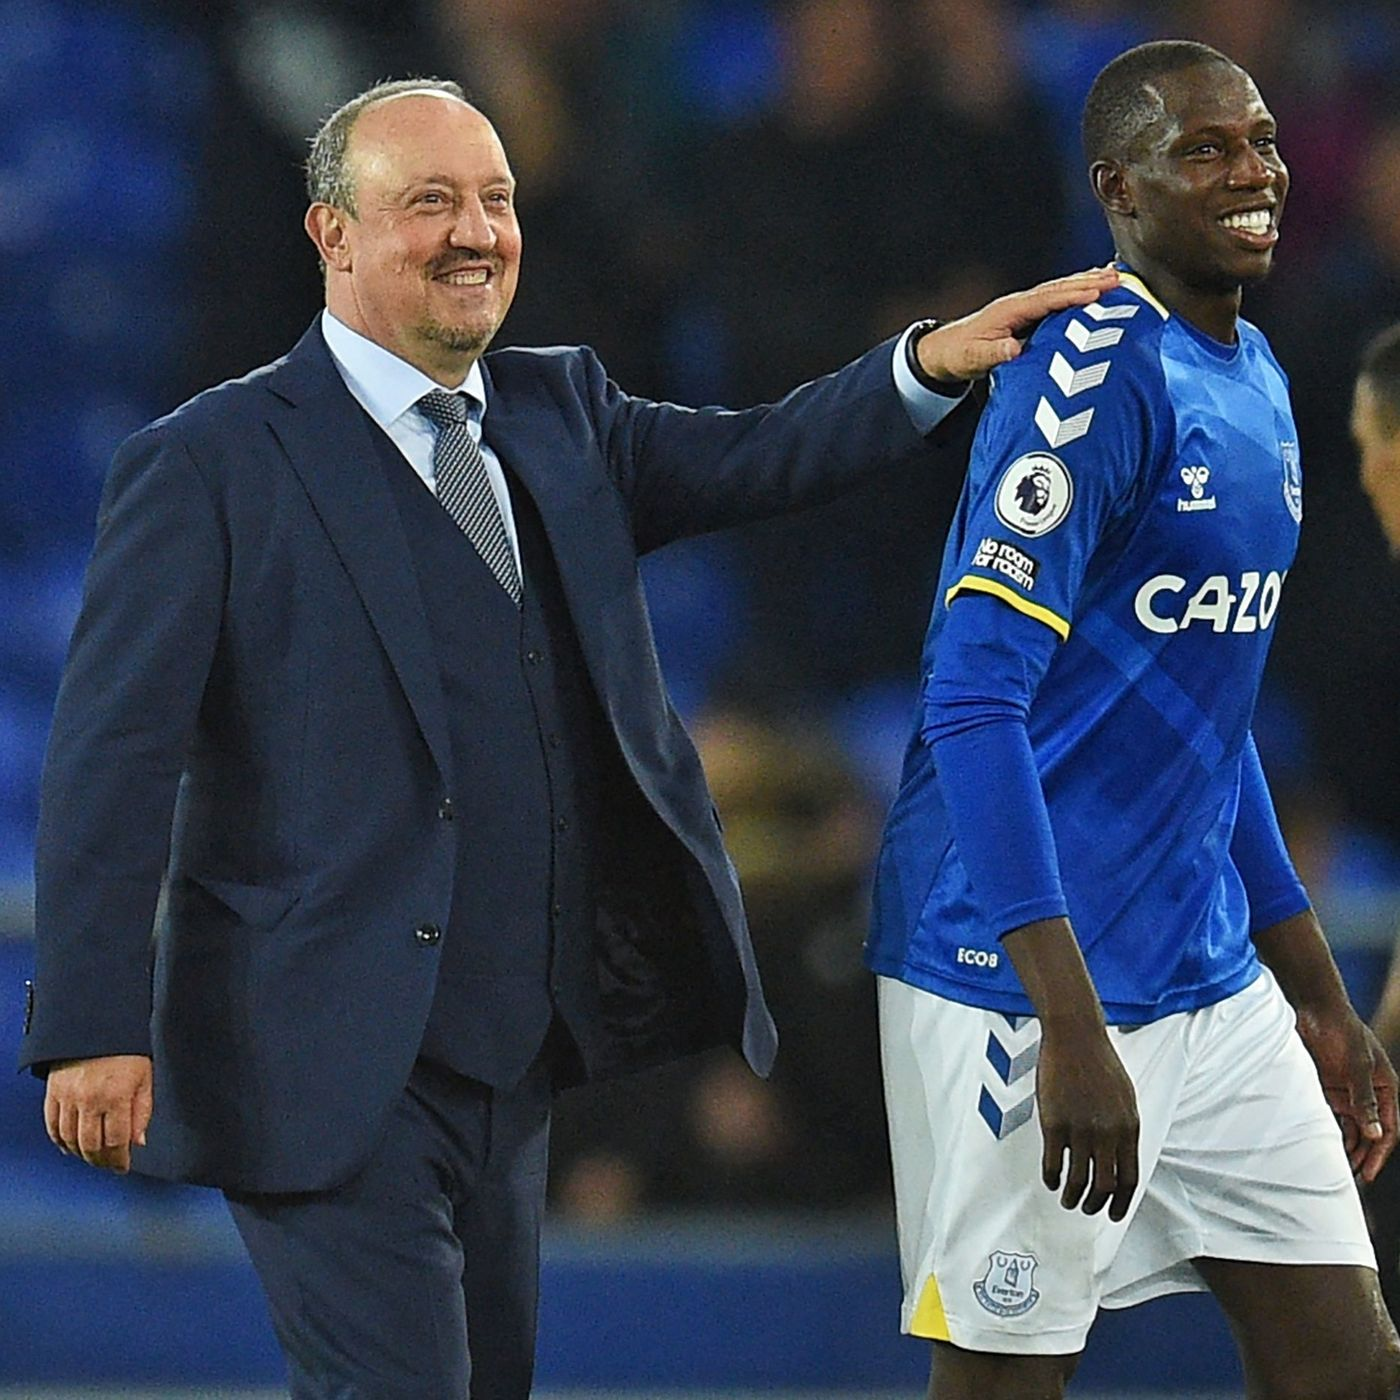 Royal Blue: Shifting perceptions and transforming Doucoure, but Villa offer Benitez his biggest test yet